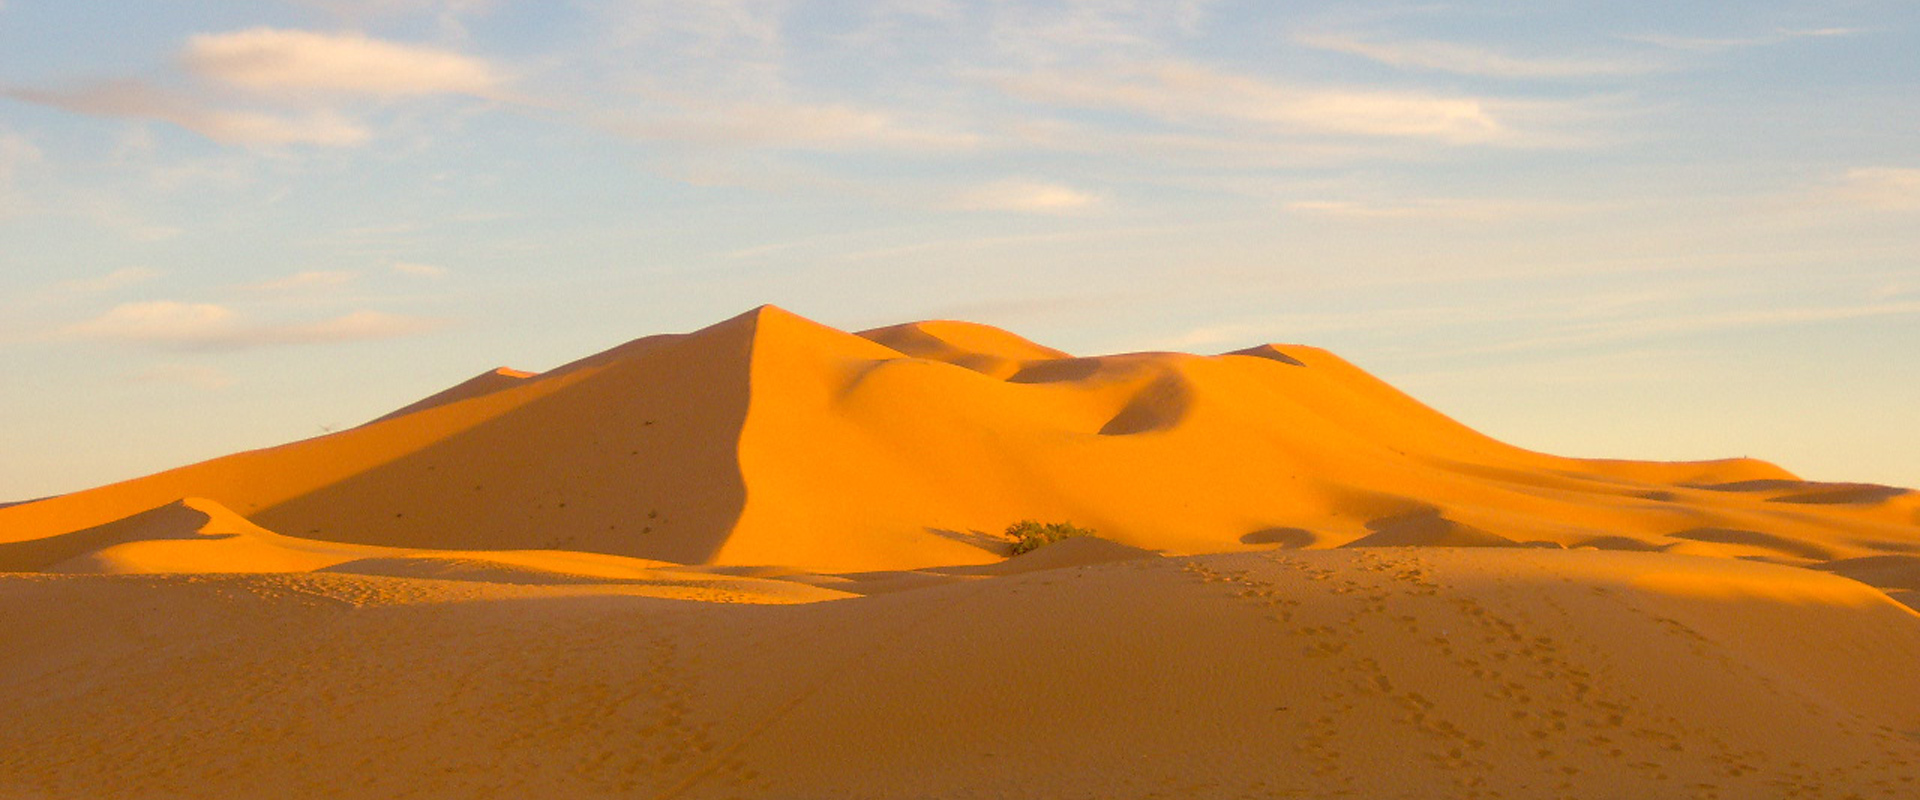 Desert Sun, an experience you will carry in your heart